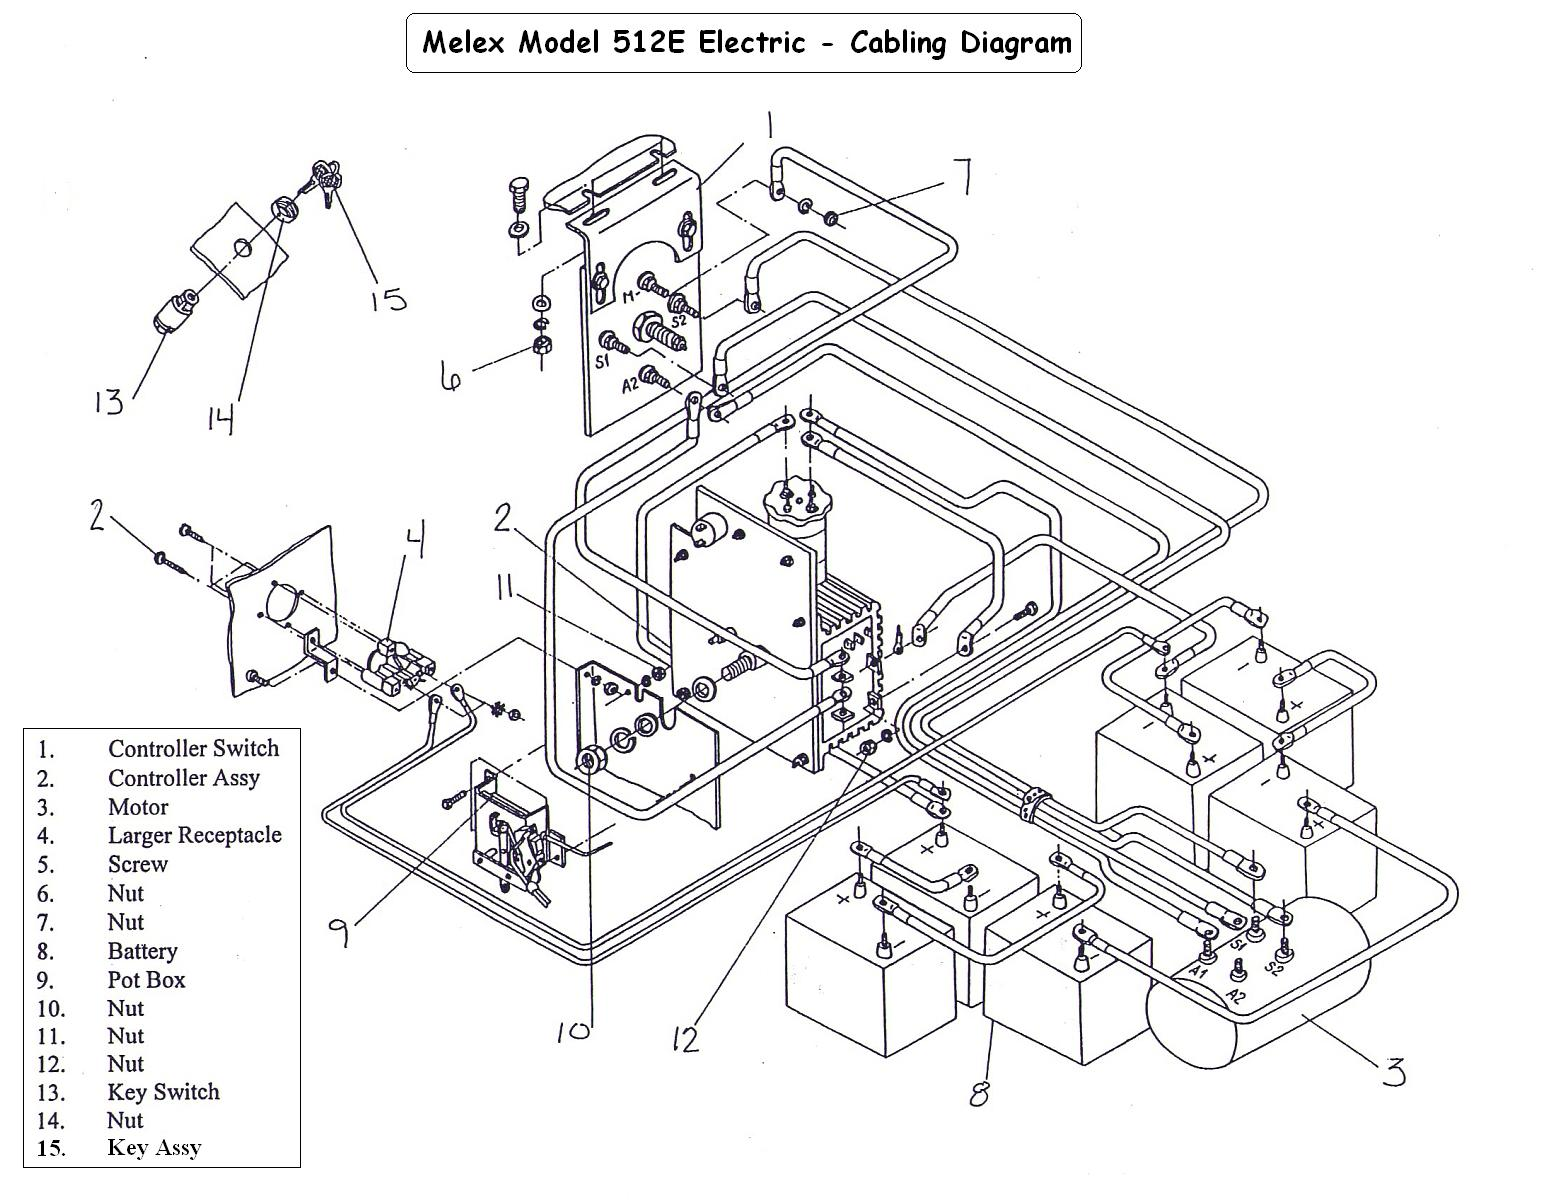 Melex512E_cabling_diagram vintagegolfcartparts com battery wiring diagram melex golf cart at bakdesigns.co